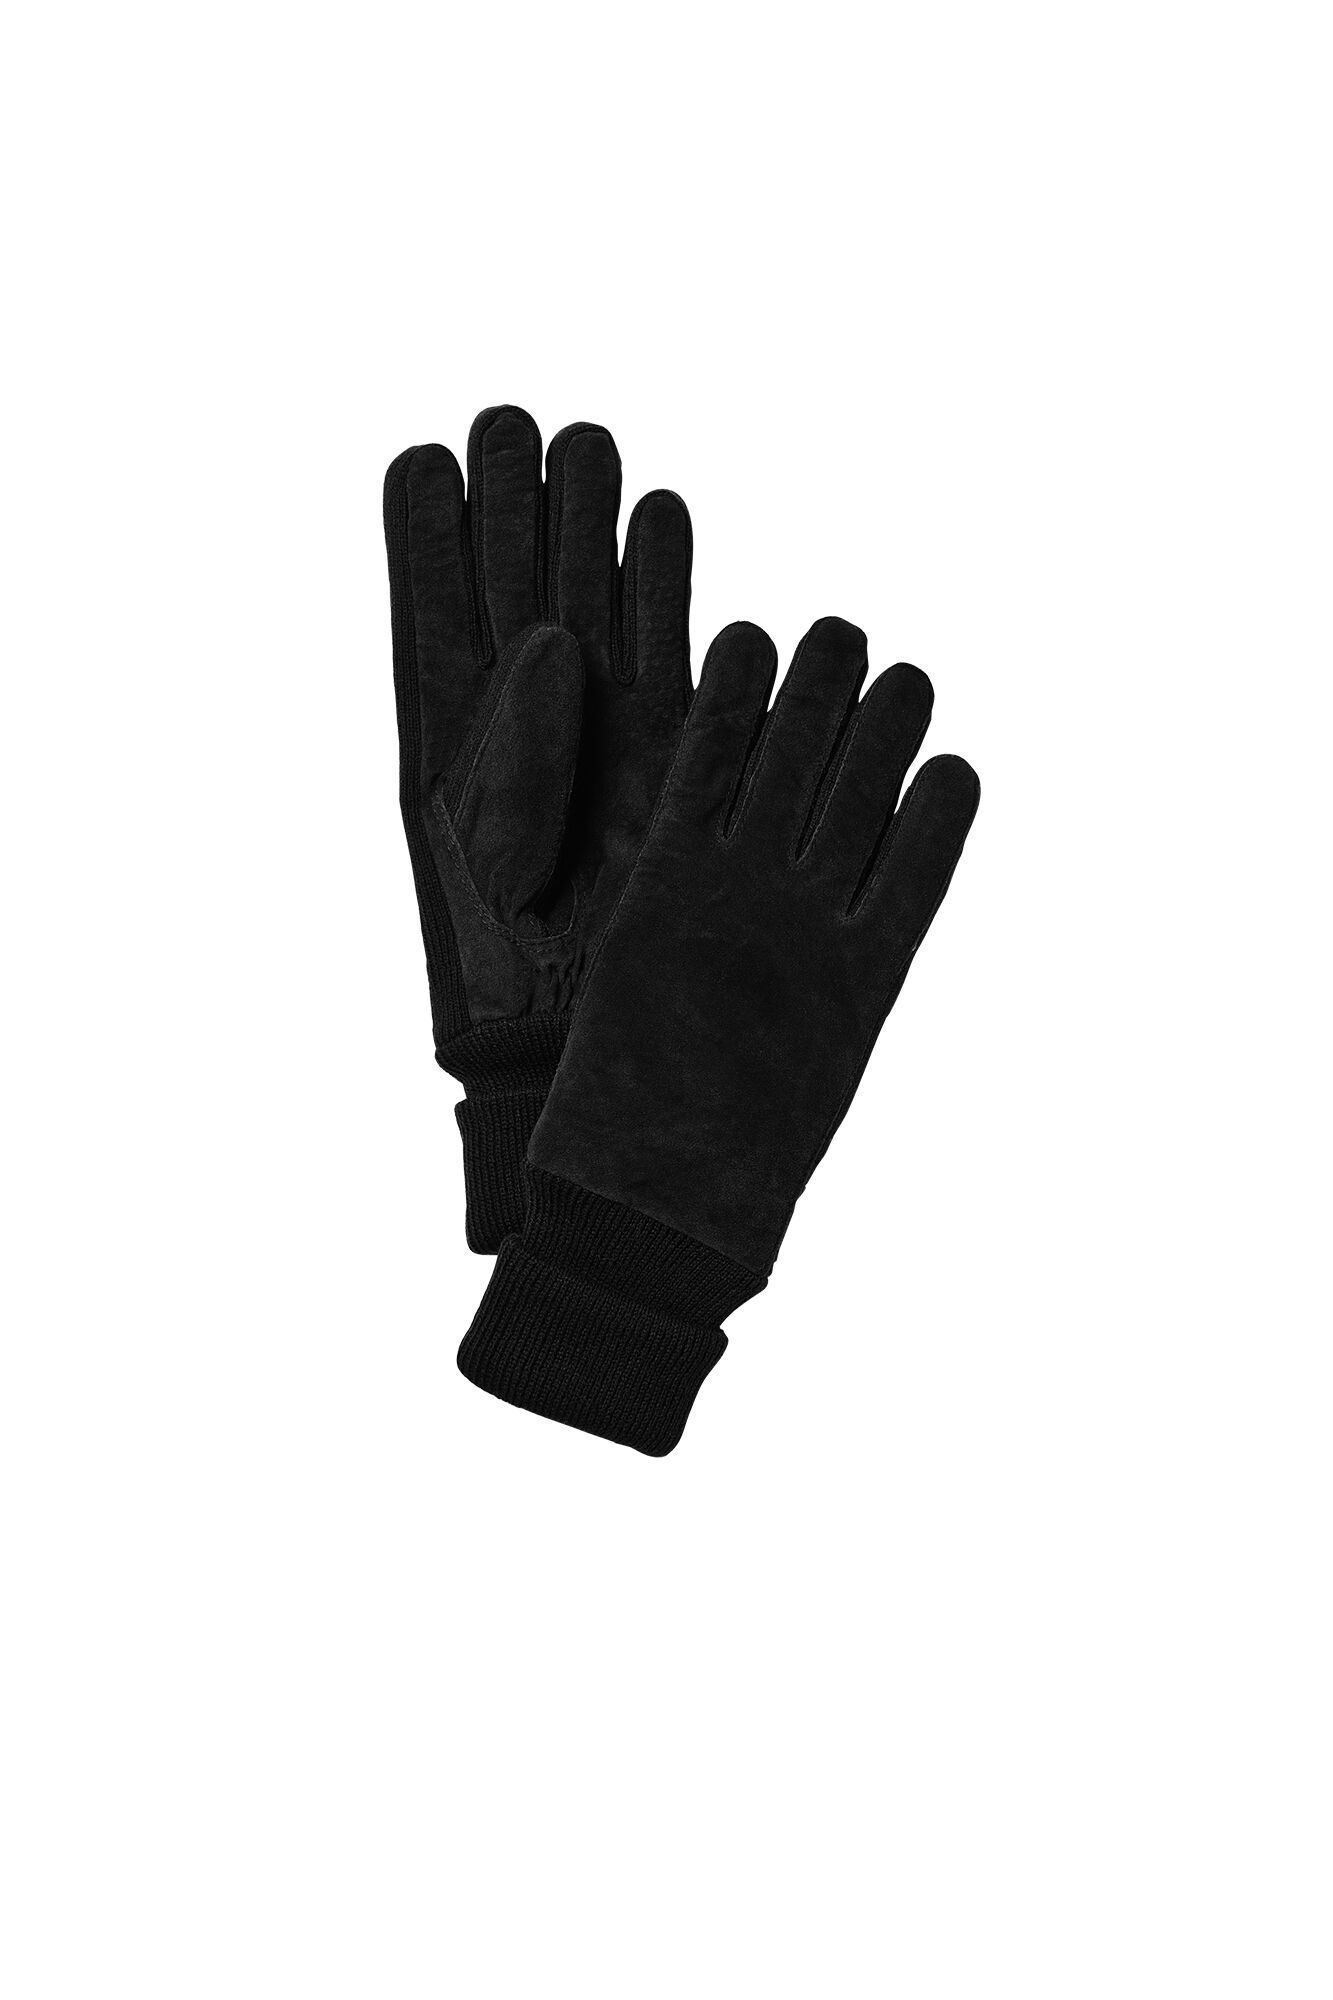 17590 NEUTRAL Glove, 100